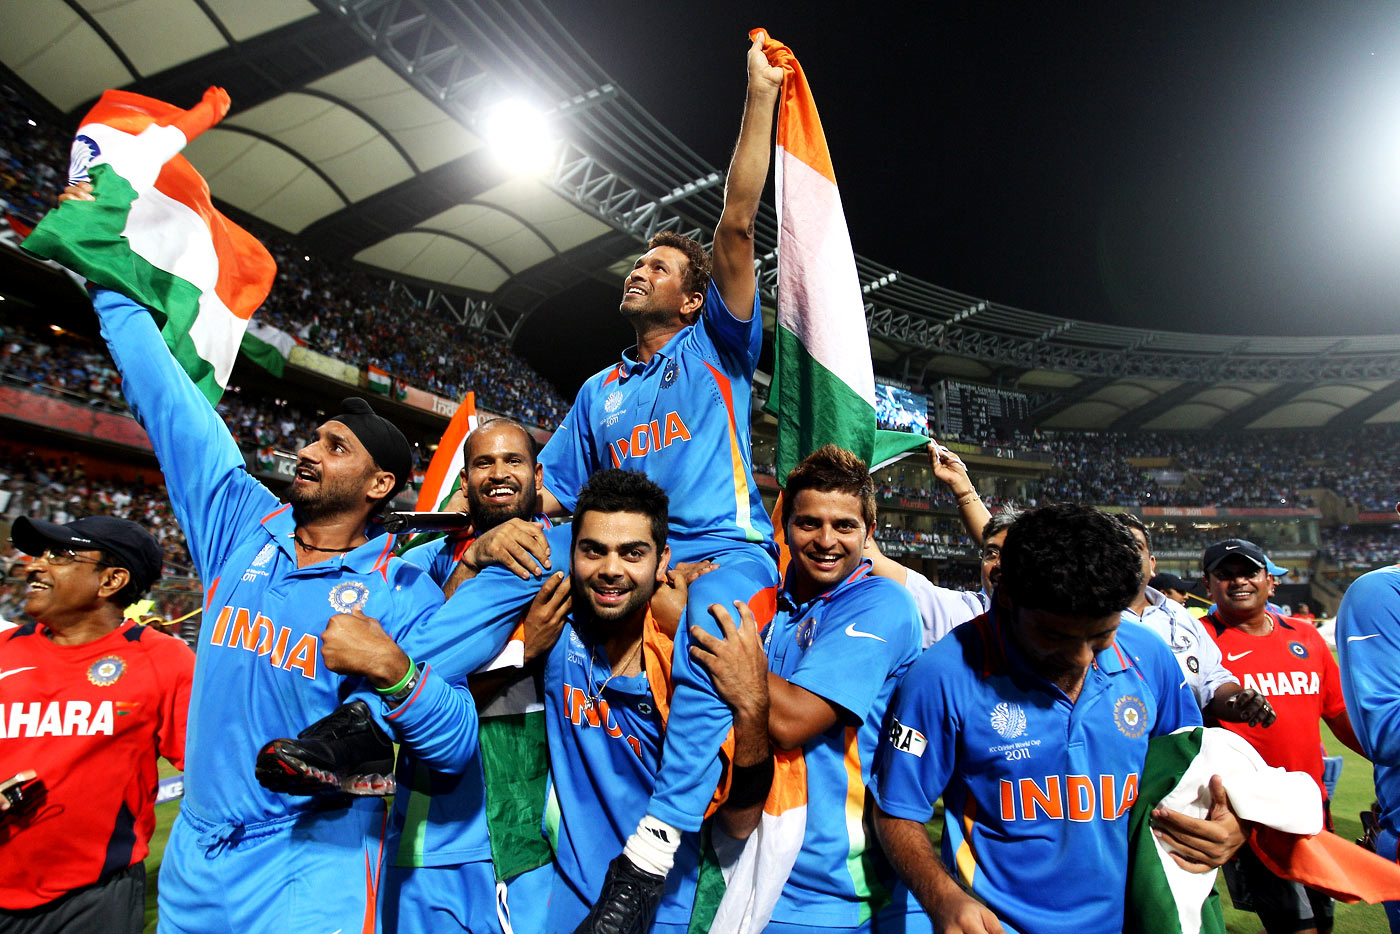 I Didn't Have Any Emotions After Winning the 2011 World Cup, Says Virat Kohli